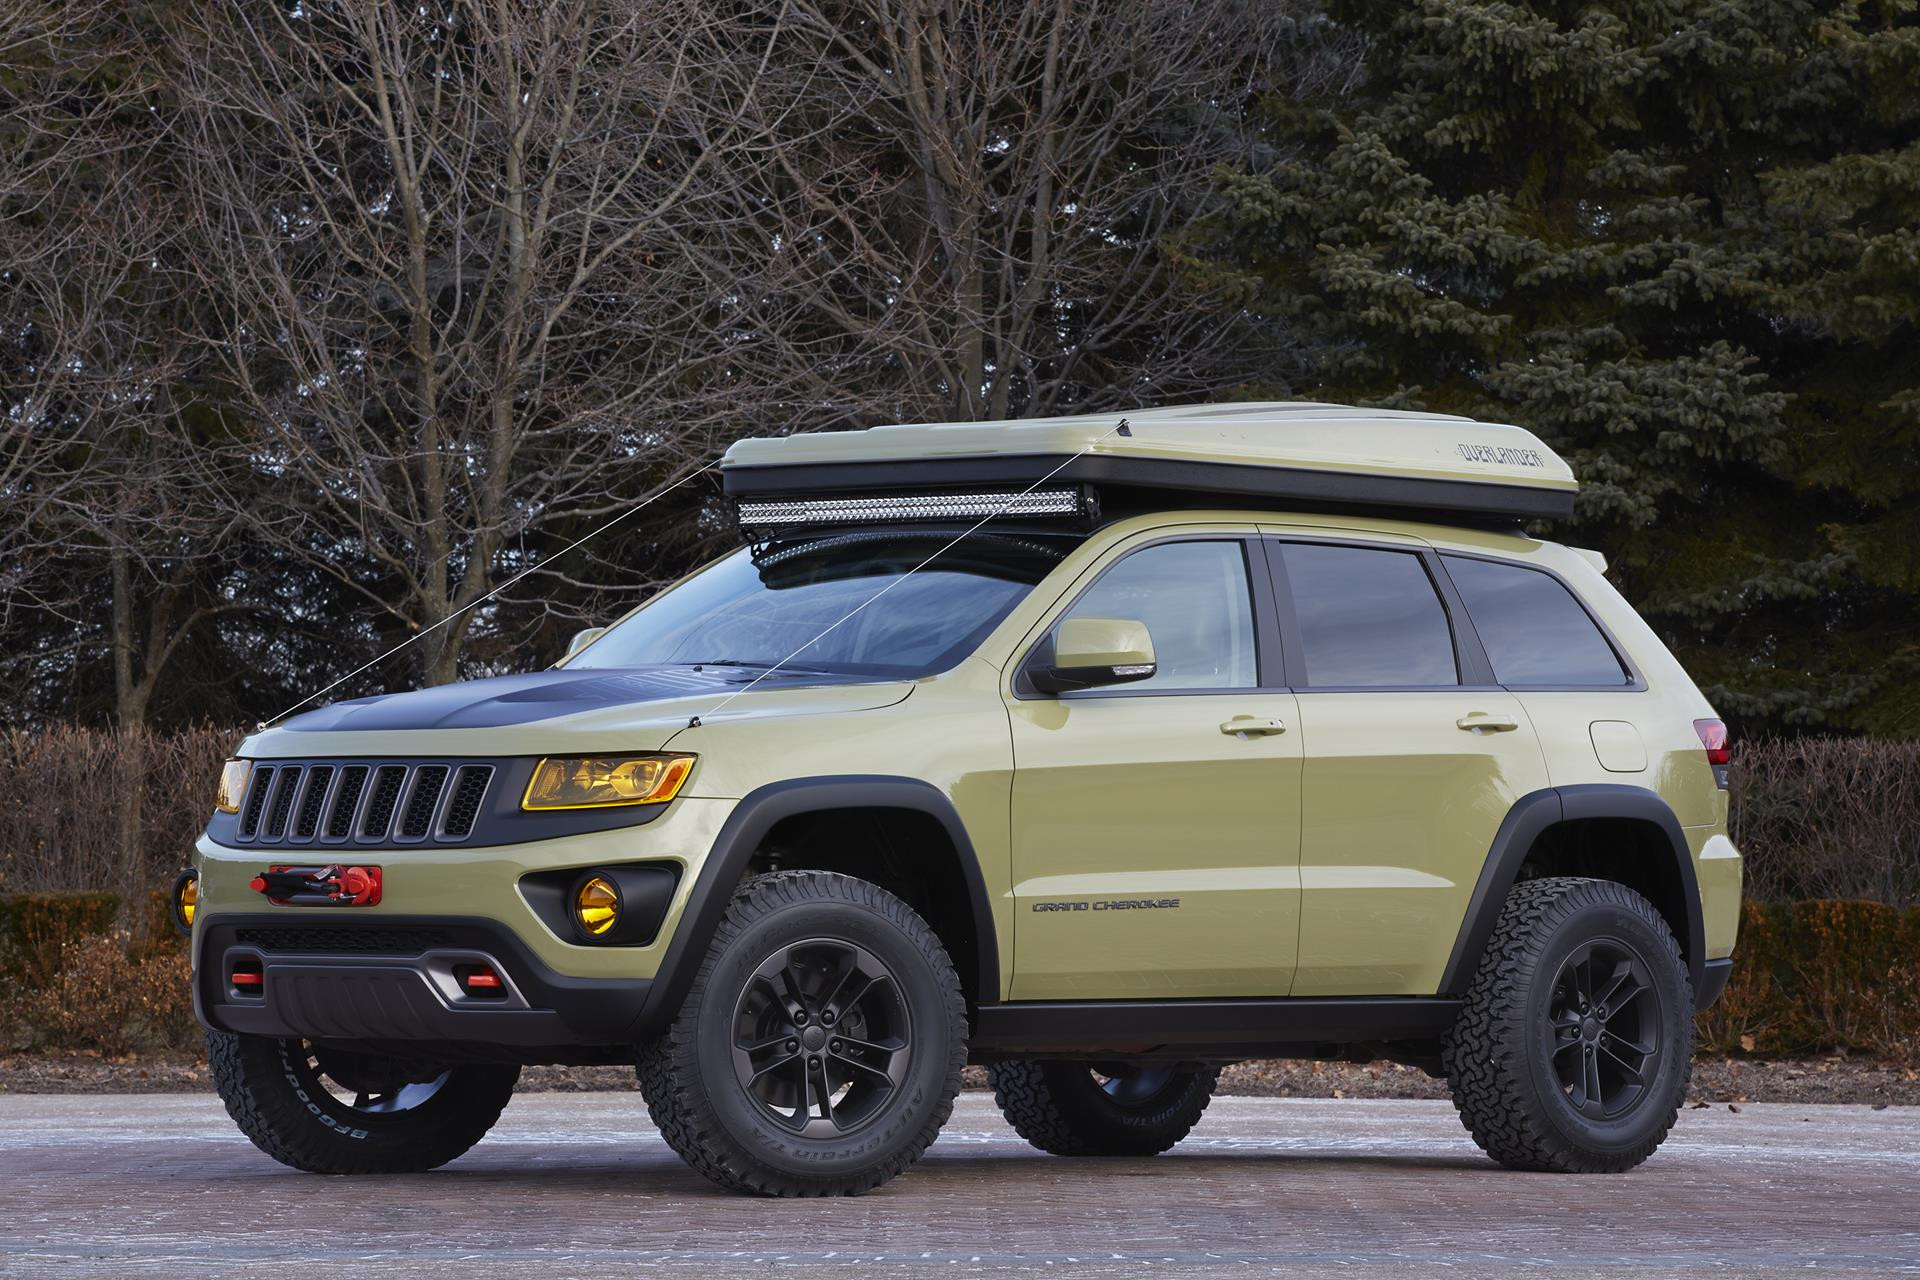 2015 jeep grand cherokee overlander news and information. Black Bedroom Furniture Sets. Home Design Ideas